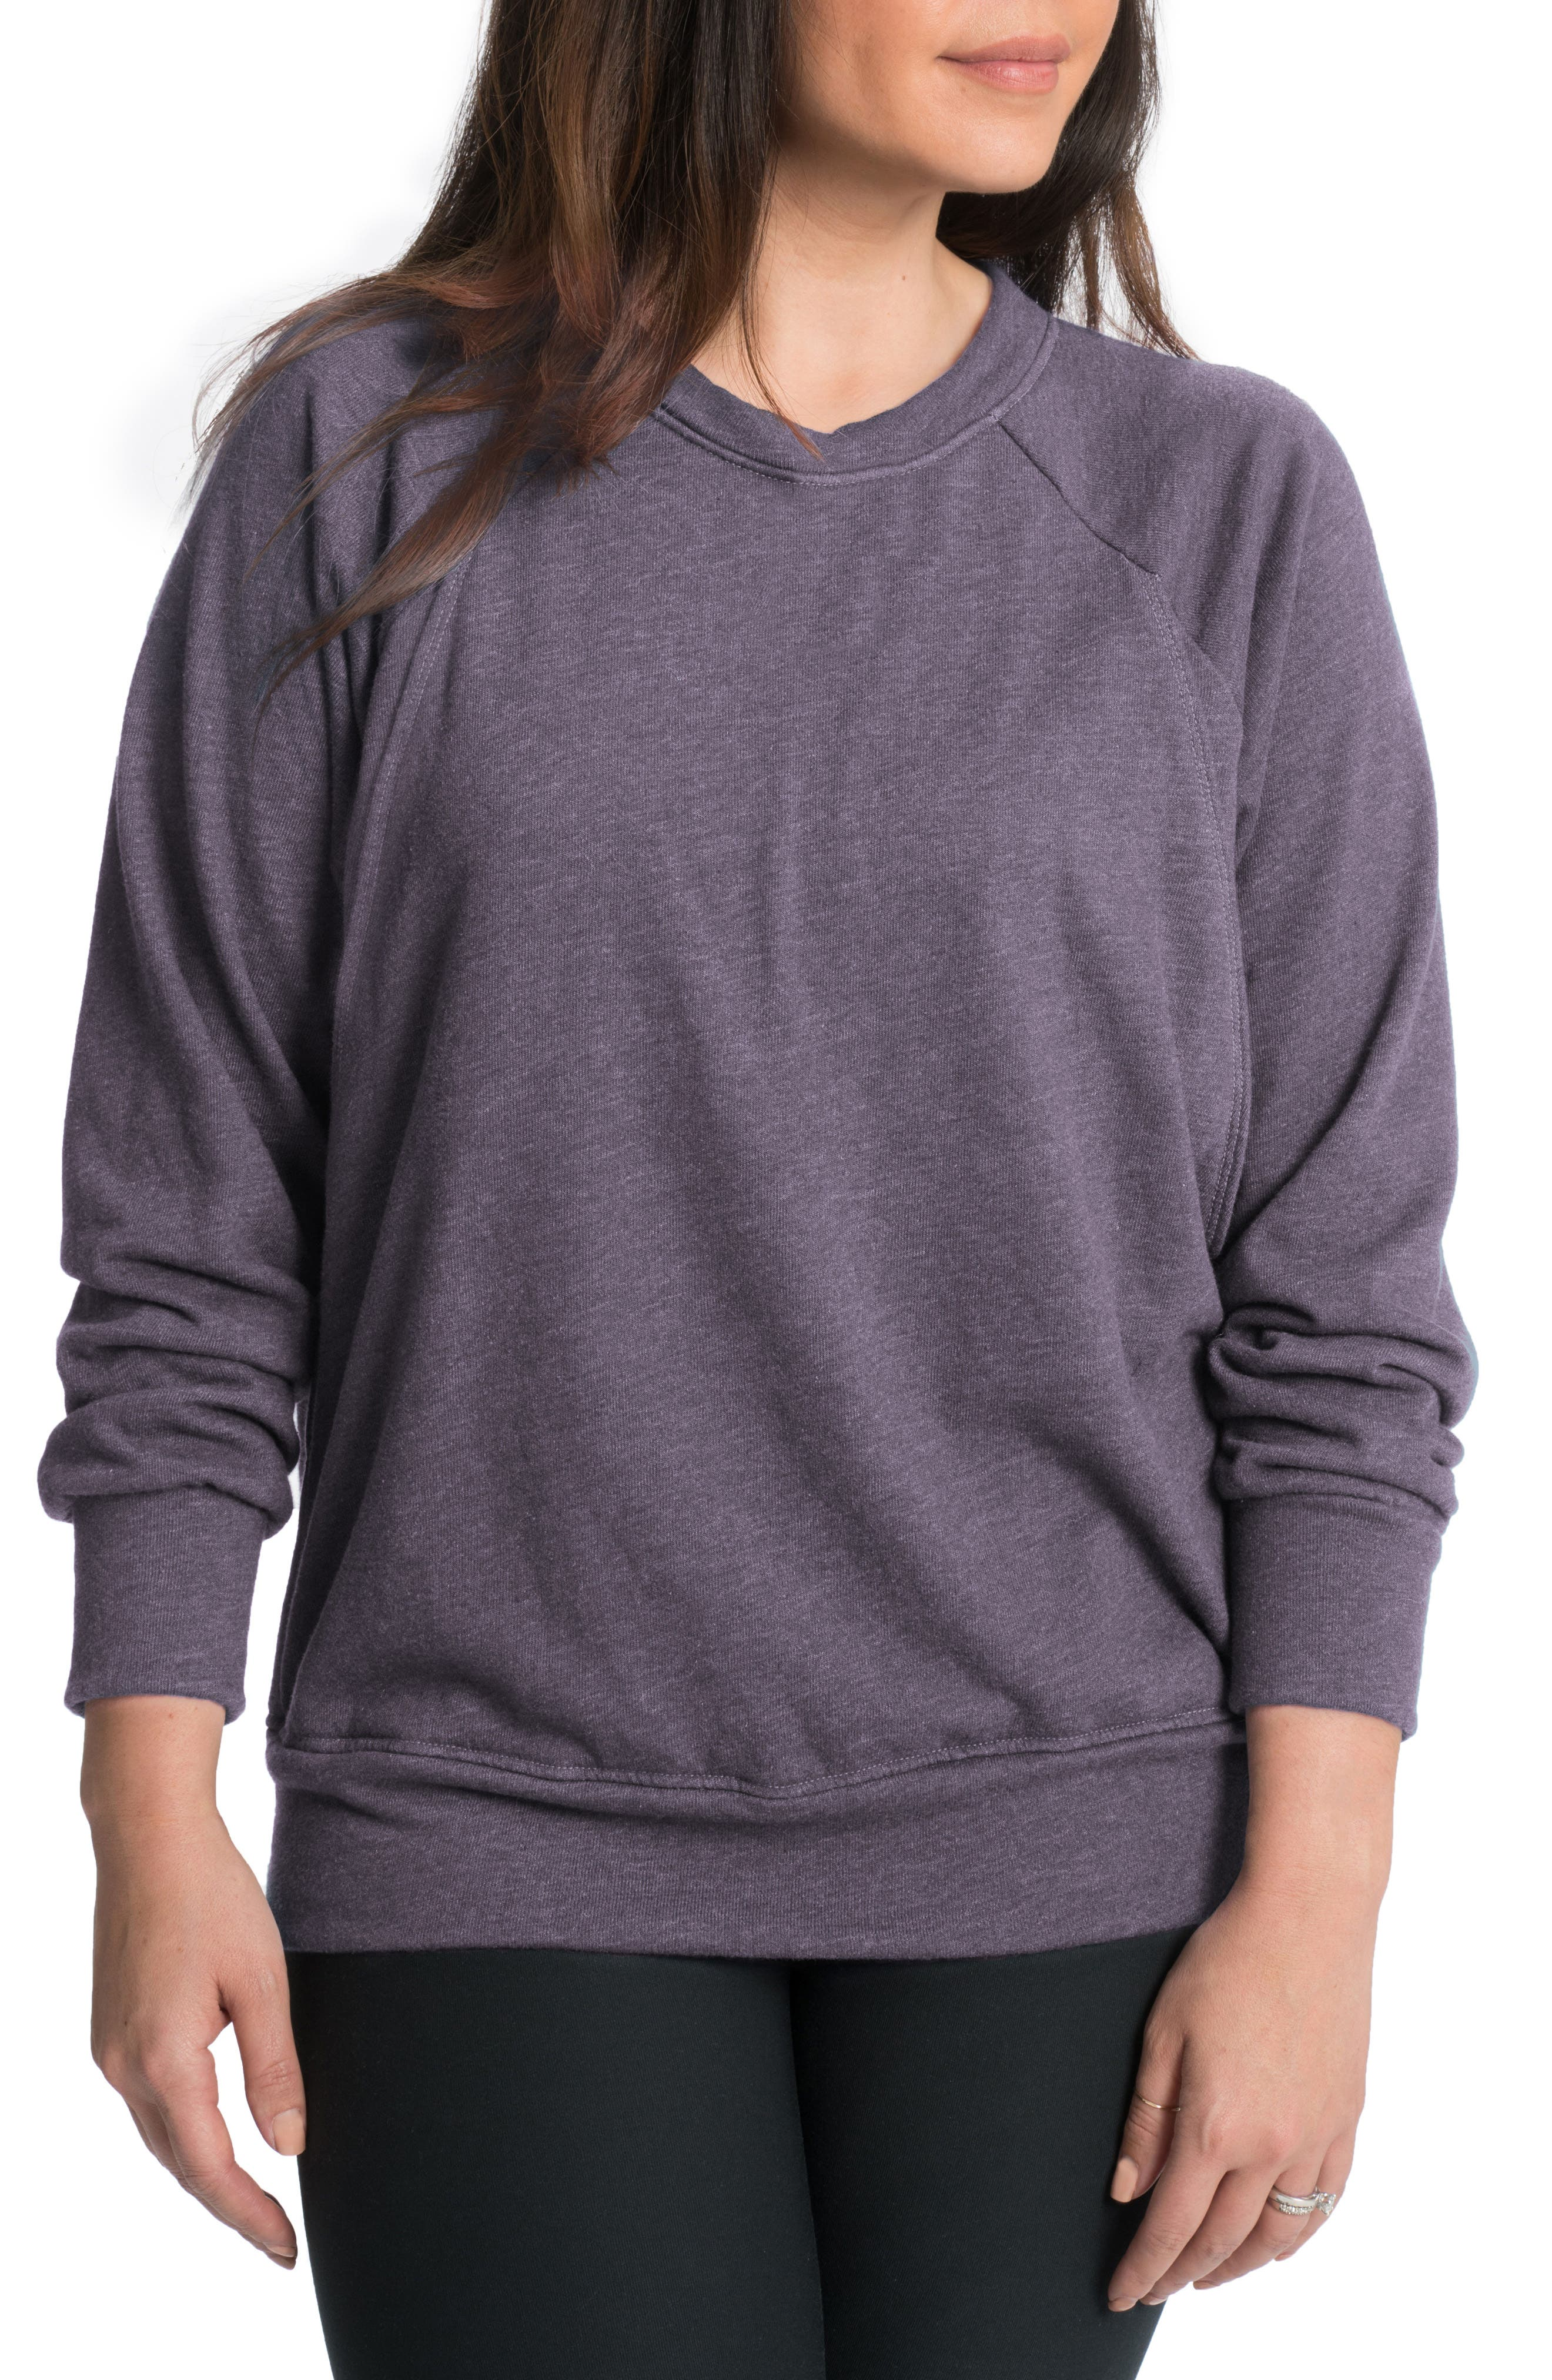 Relaxed Daily Maternity/Nursing Sweatshirt,                         Main,                         color, Violet Verbena